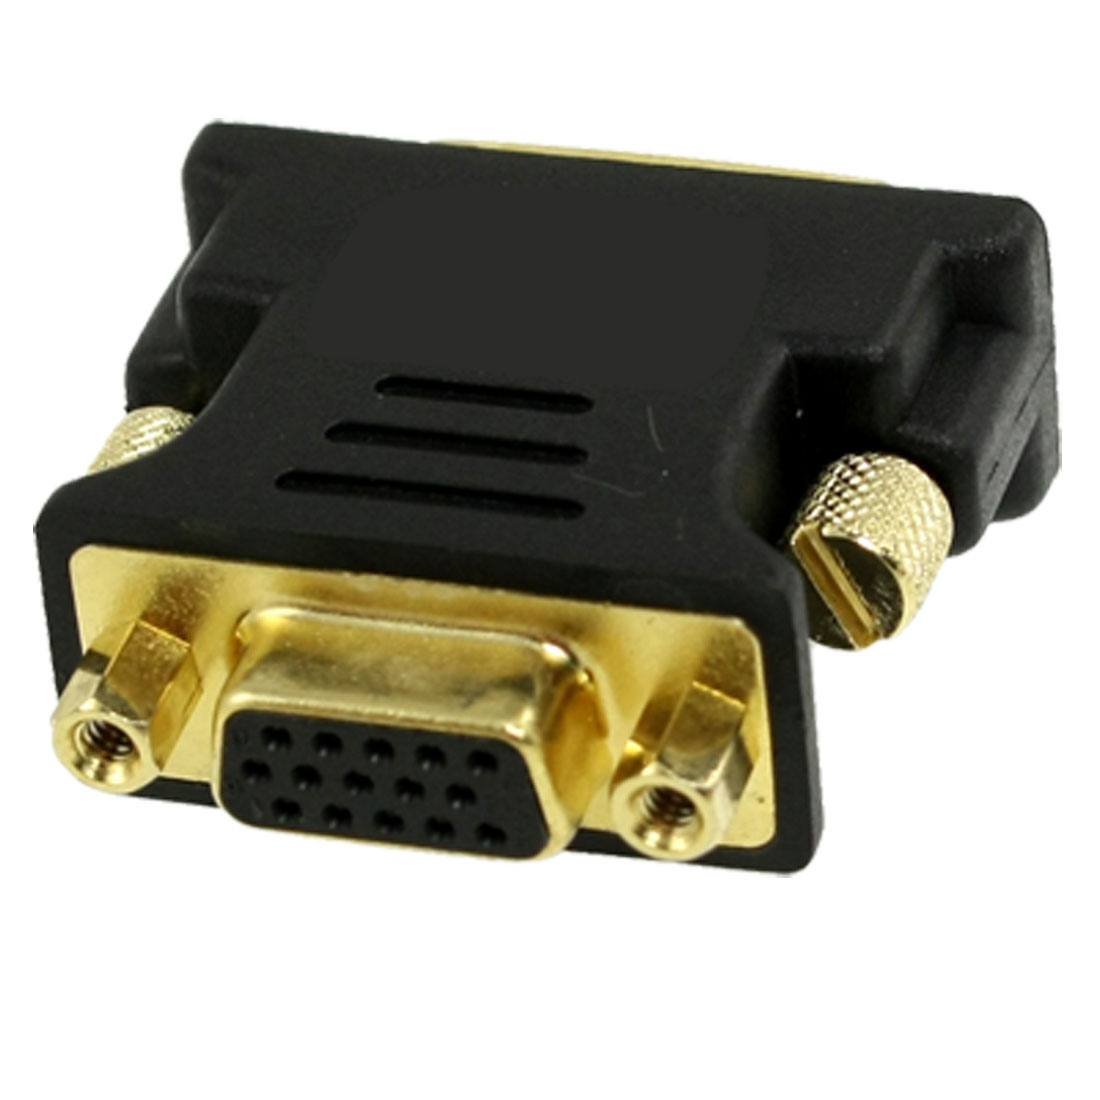 VGA Female to DVI-I Dual Link Male Connector Converter Adapter Black